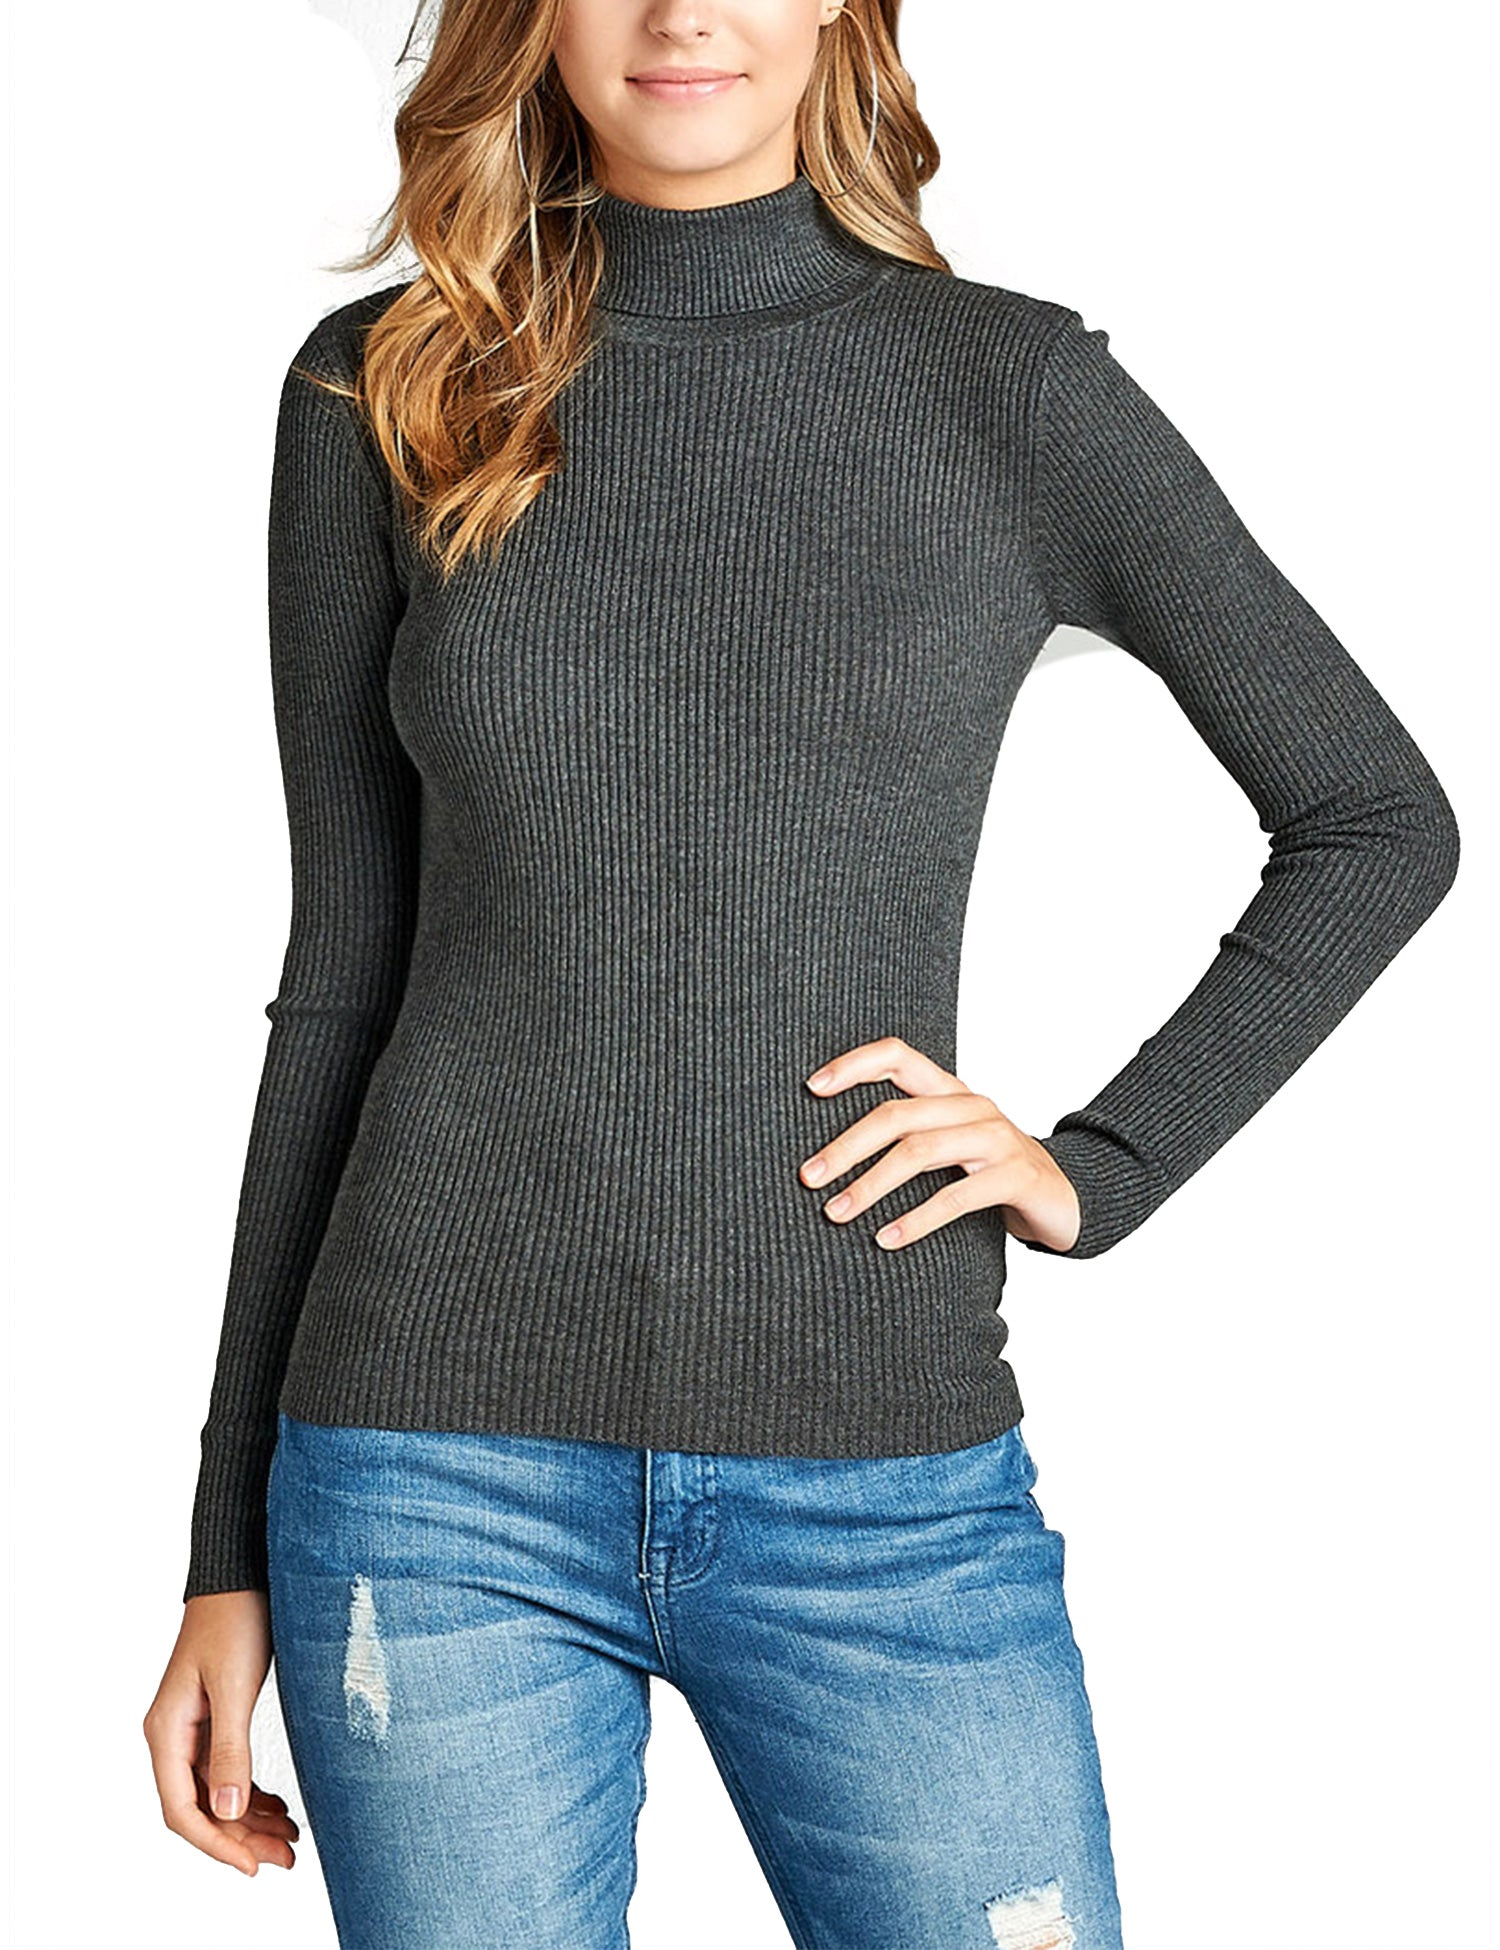 e68de6ed80e061 Womens Long Sleeve Fitted Turtle Neck Ribbed Sweater Top - KOGMO